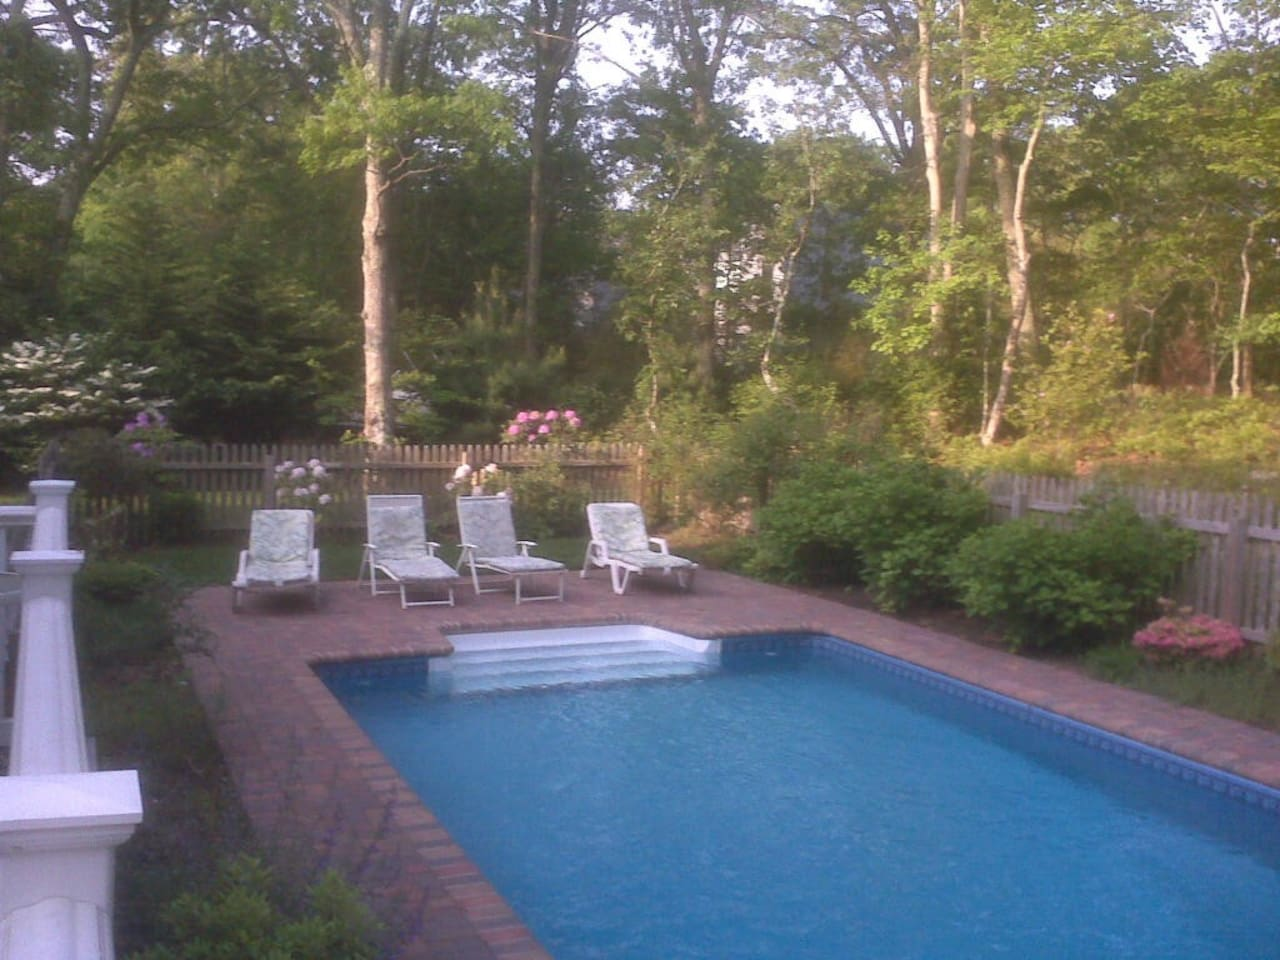 Summmer pool surrounded by gardens, state of the art solar heated pool in the woods./